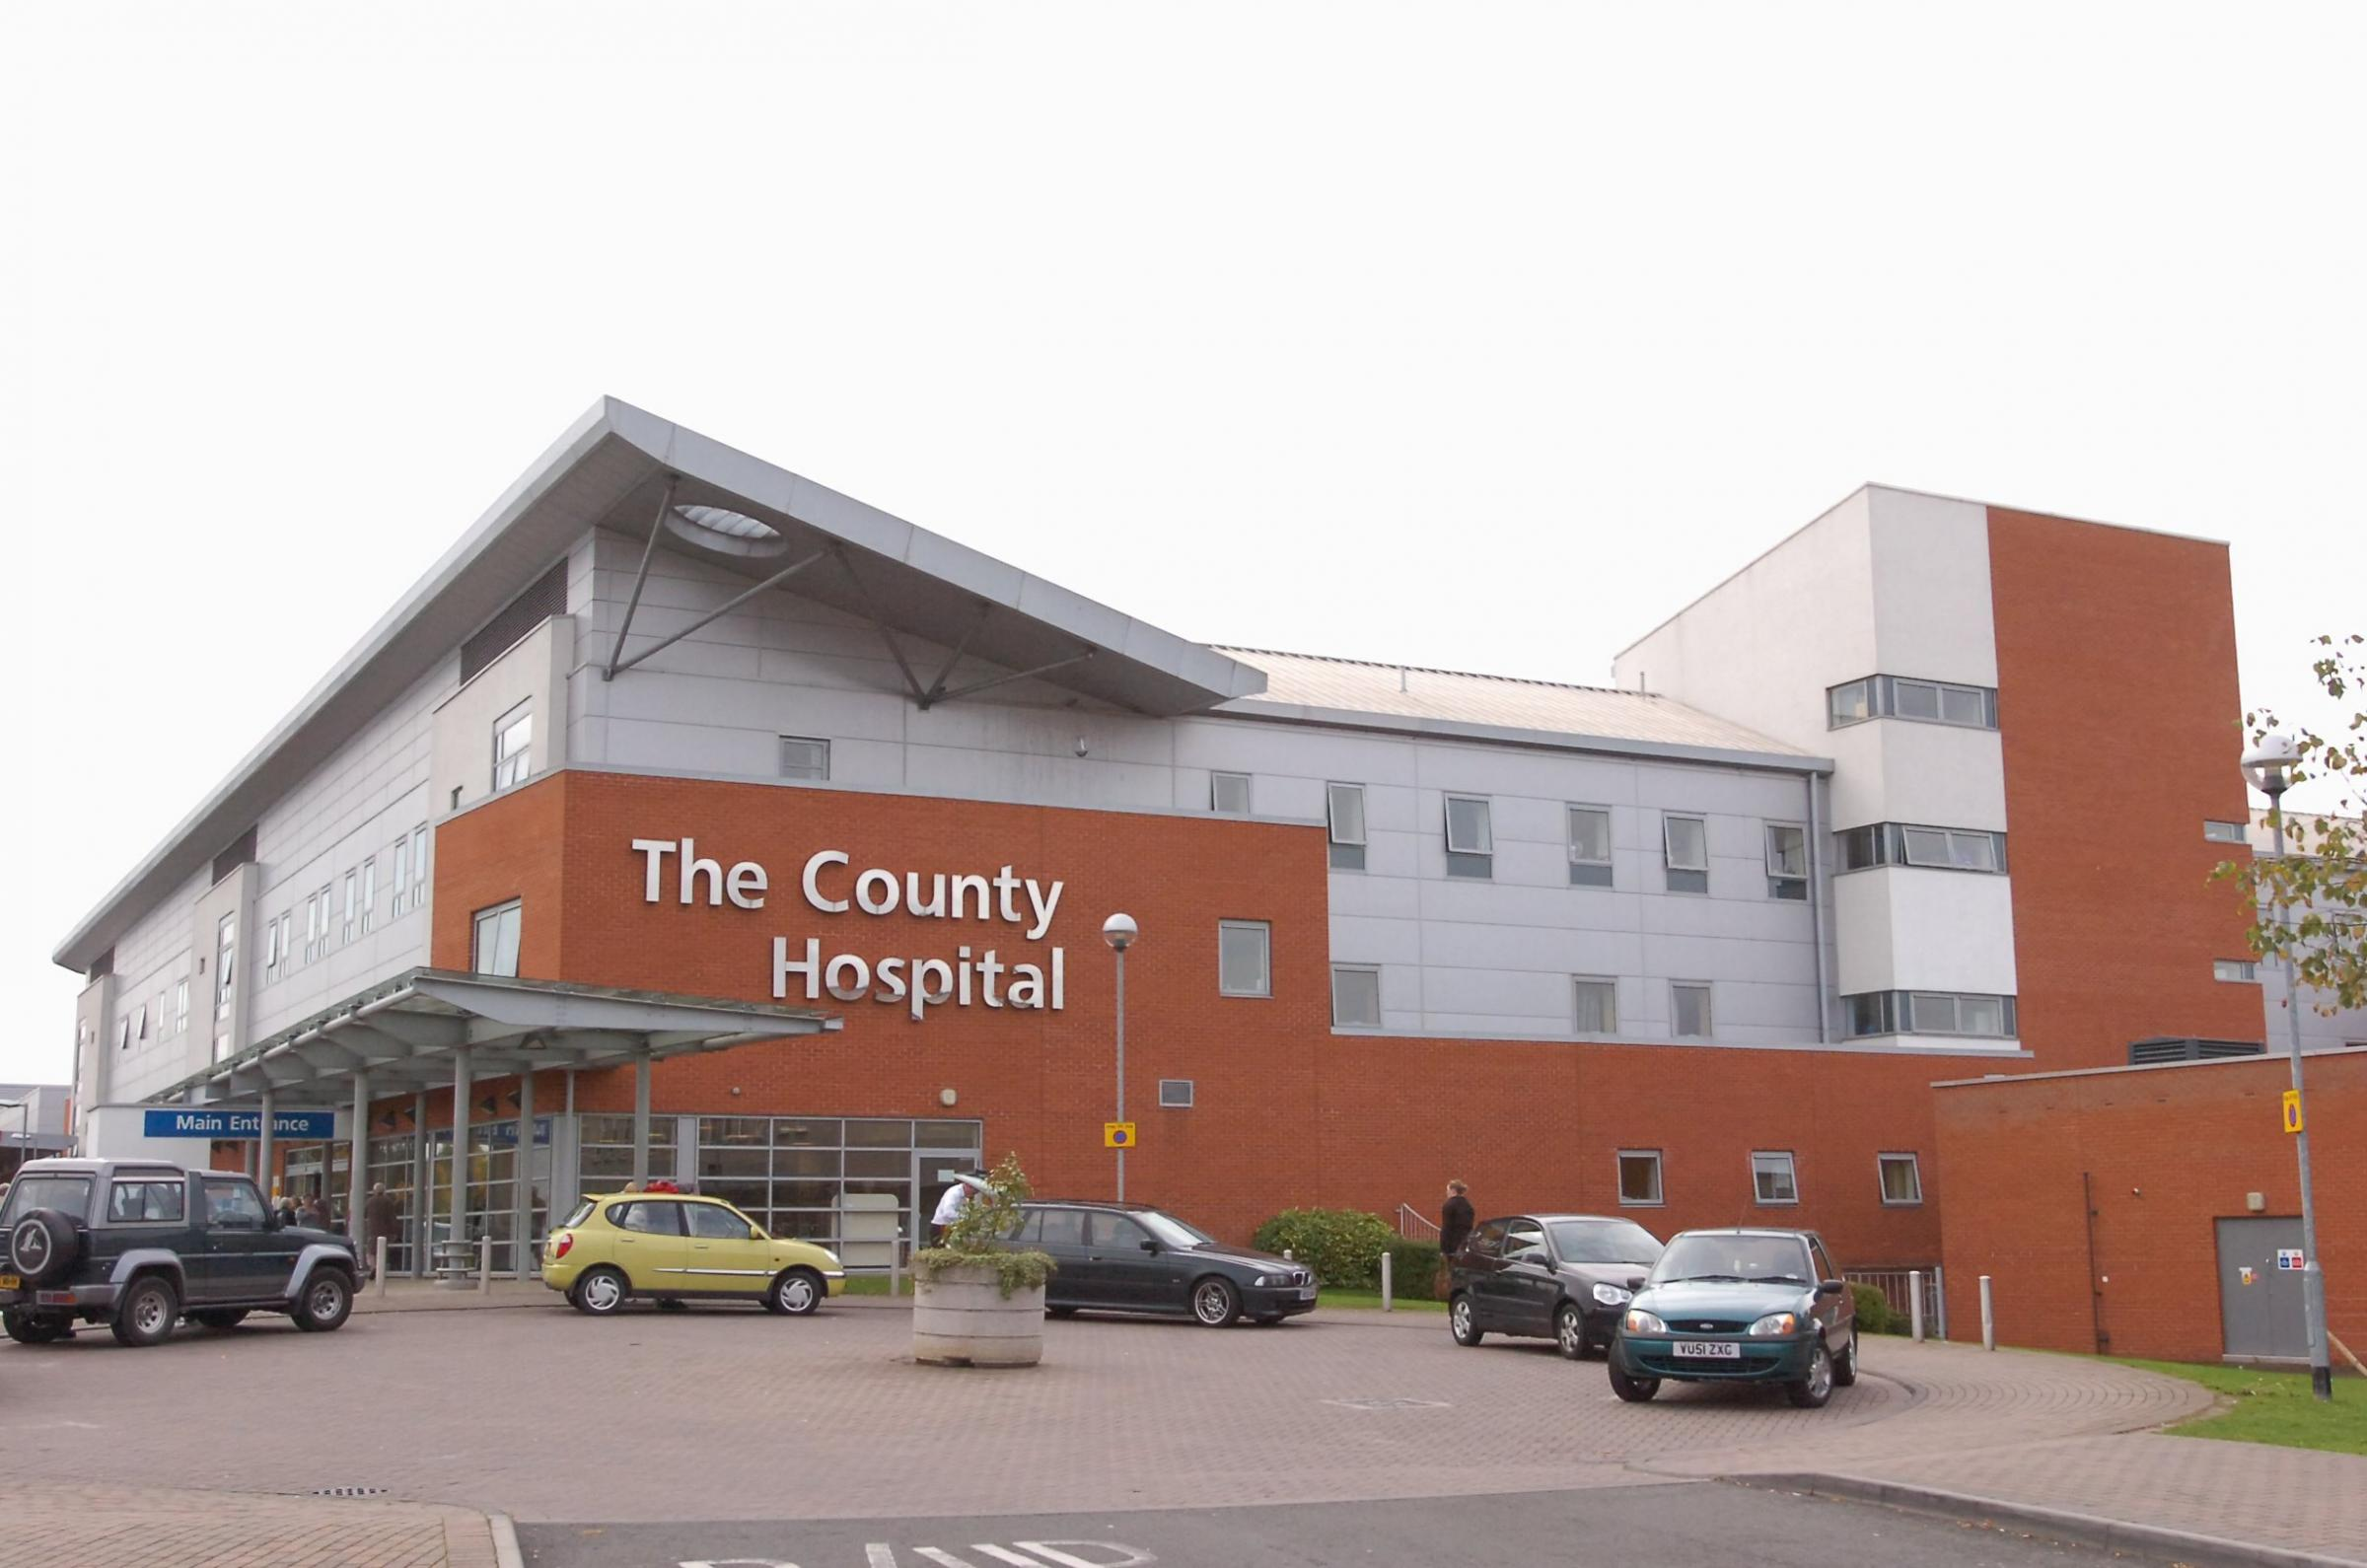 The County Hospital, Hereford.104006-1